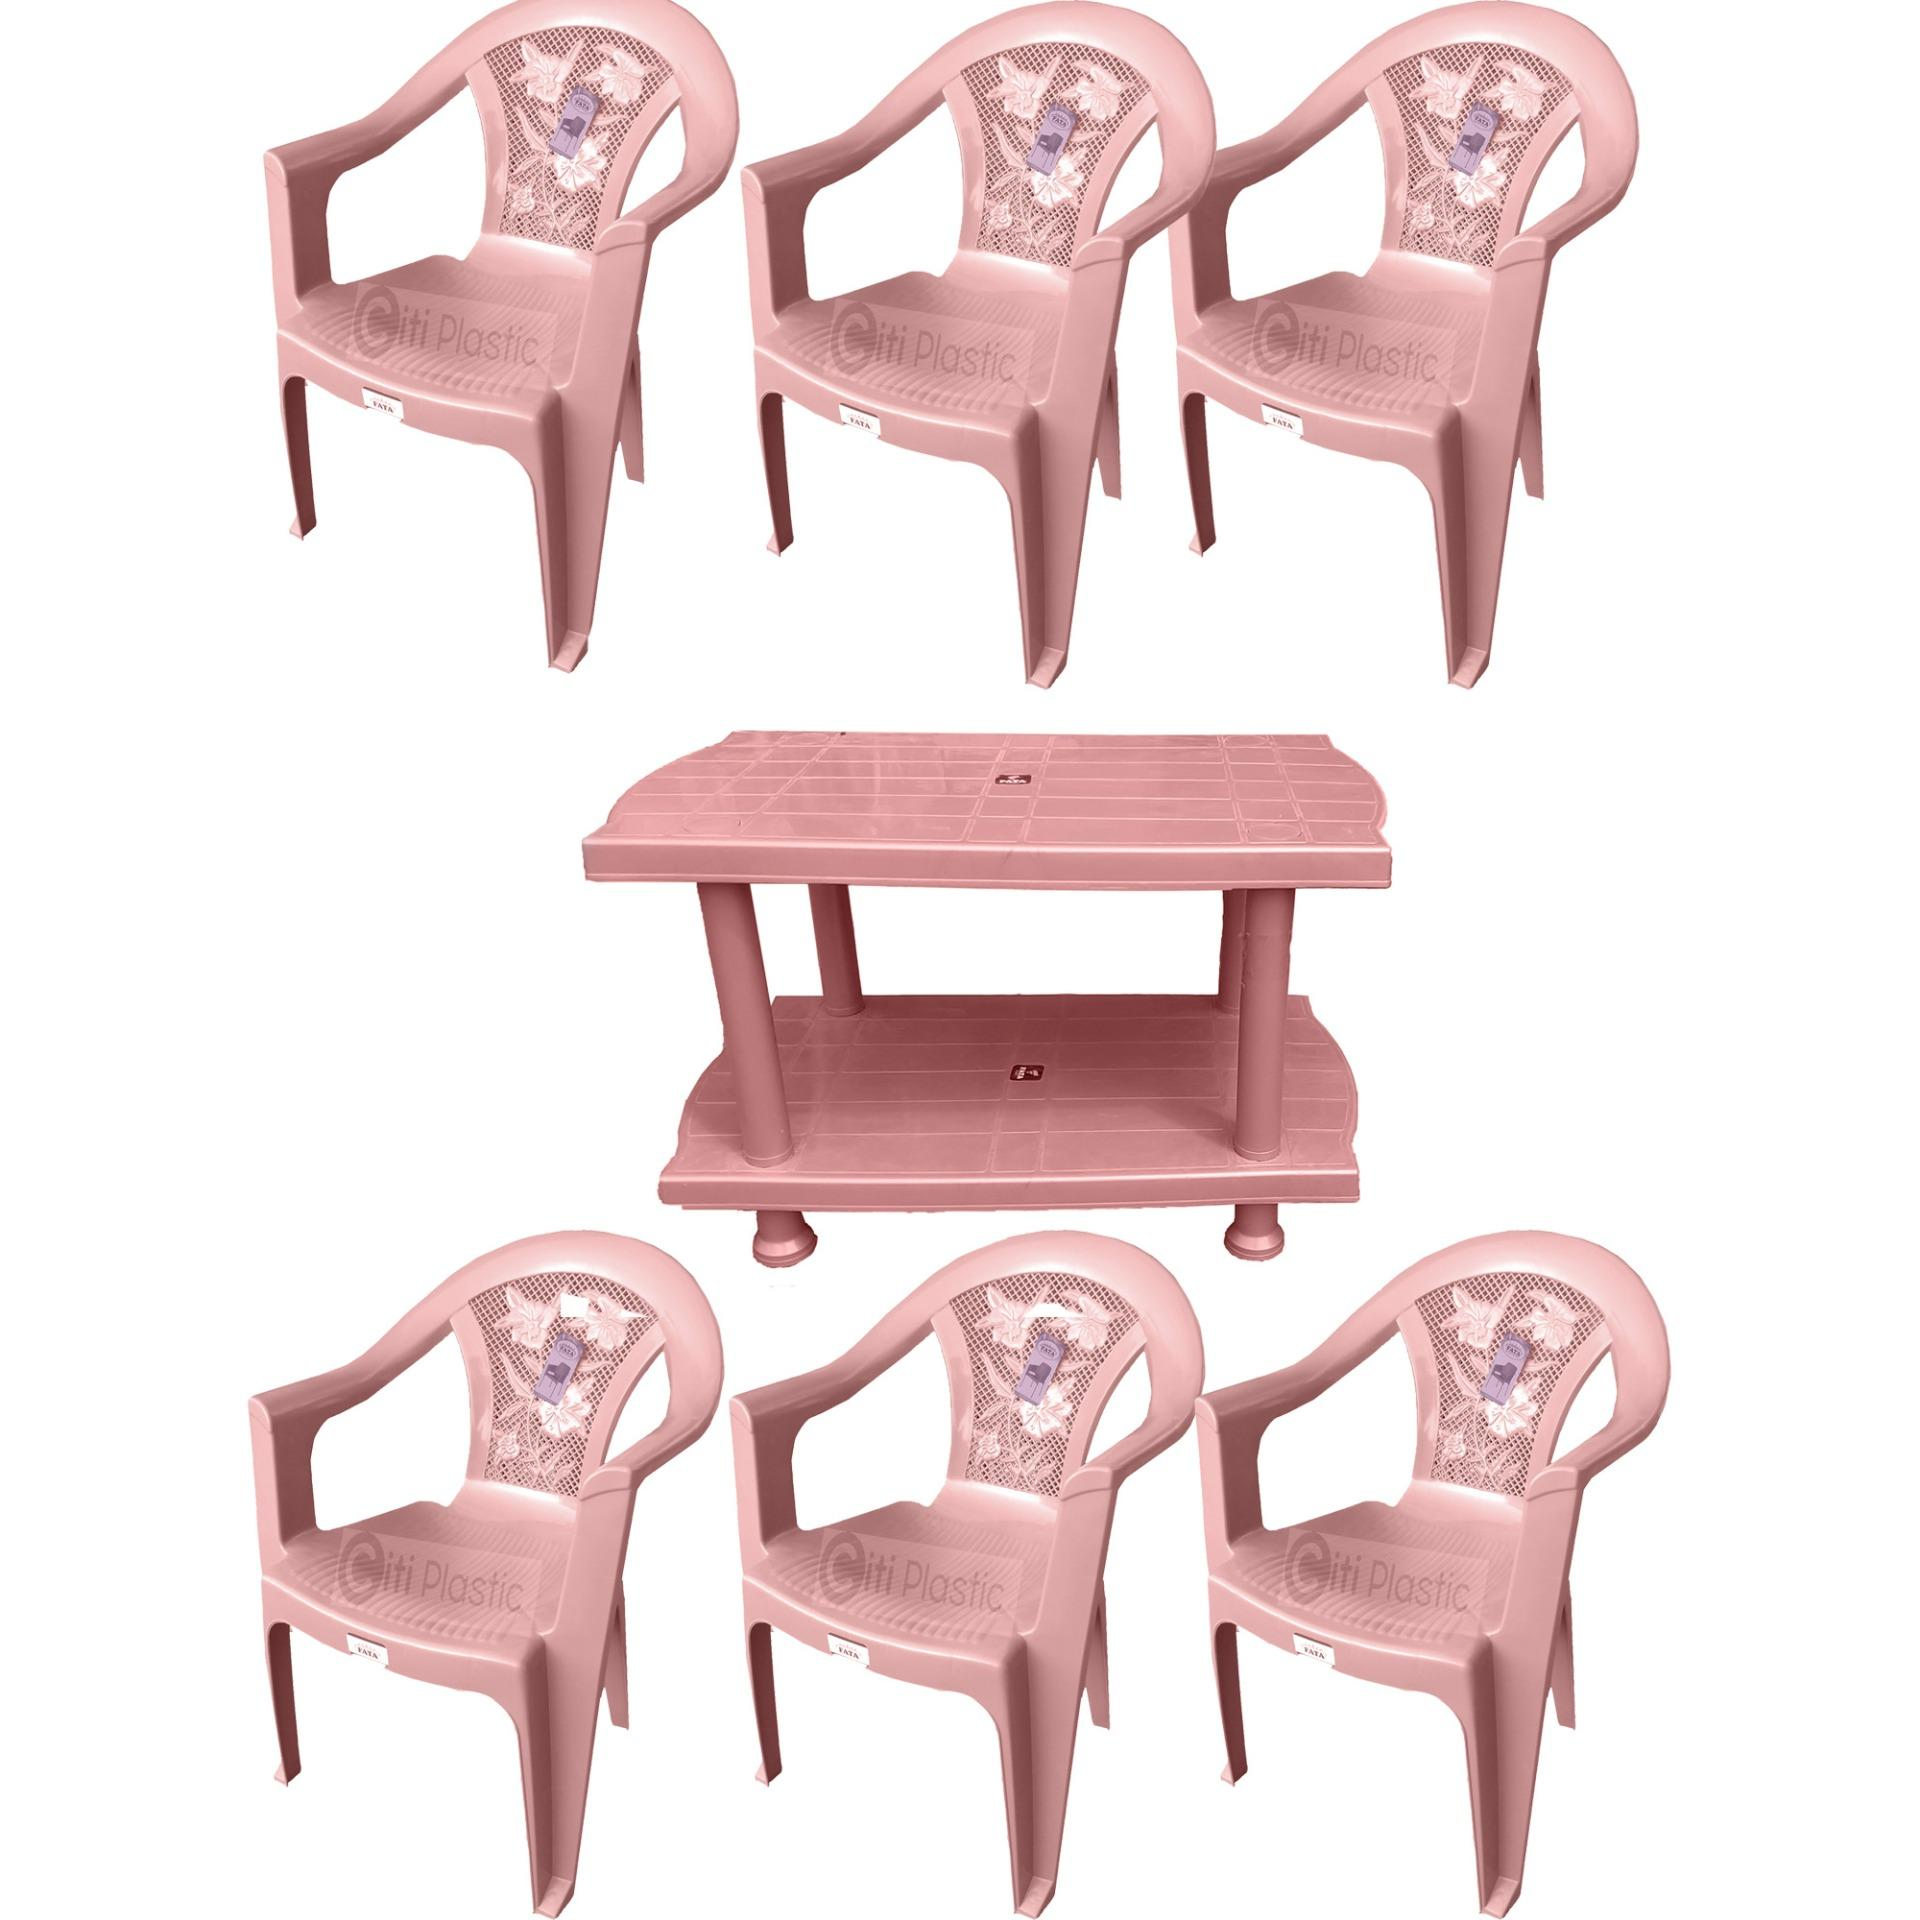 Set Of 6 Plastic Chairs And Plastic Table - Beige